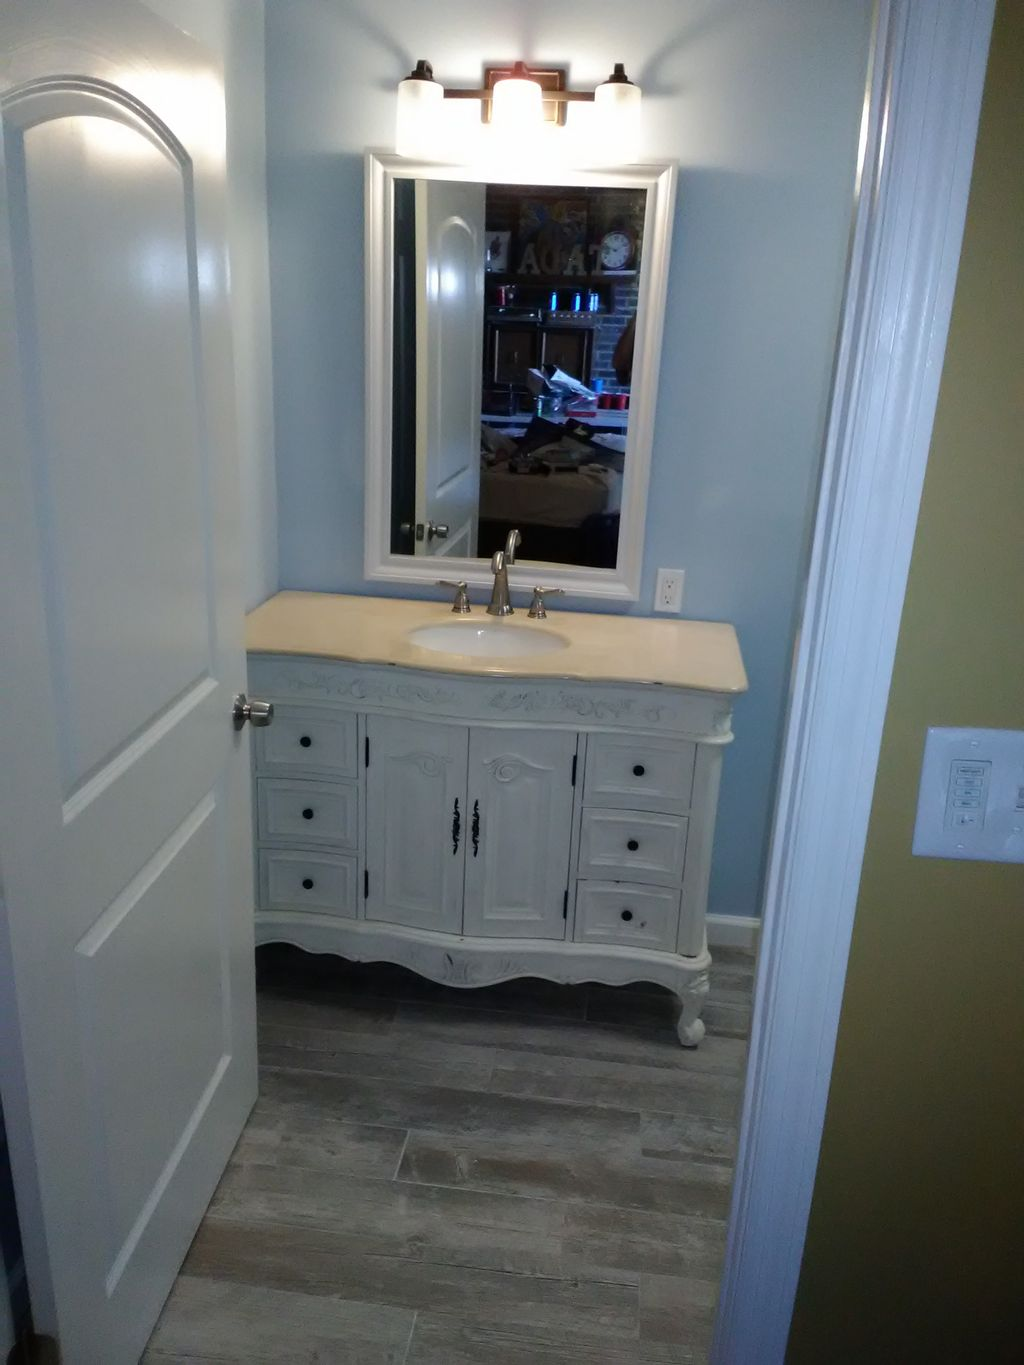 Bathroom expansion with kitchen dinette add on